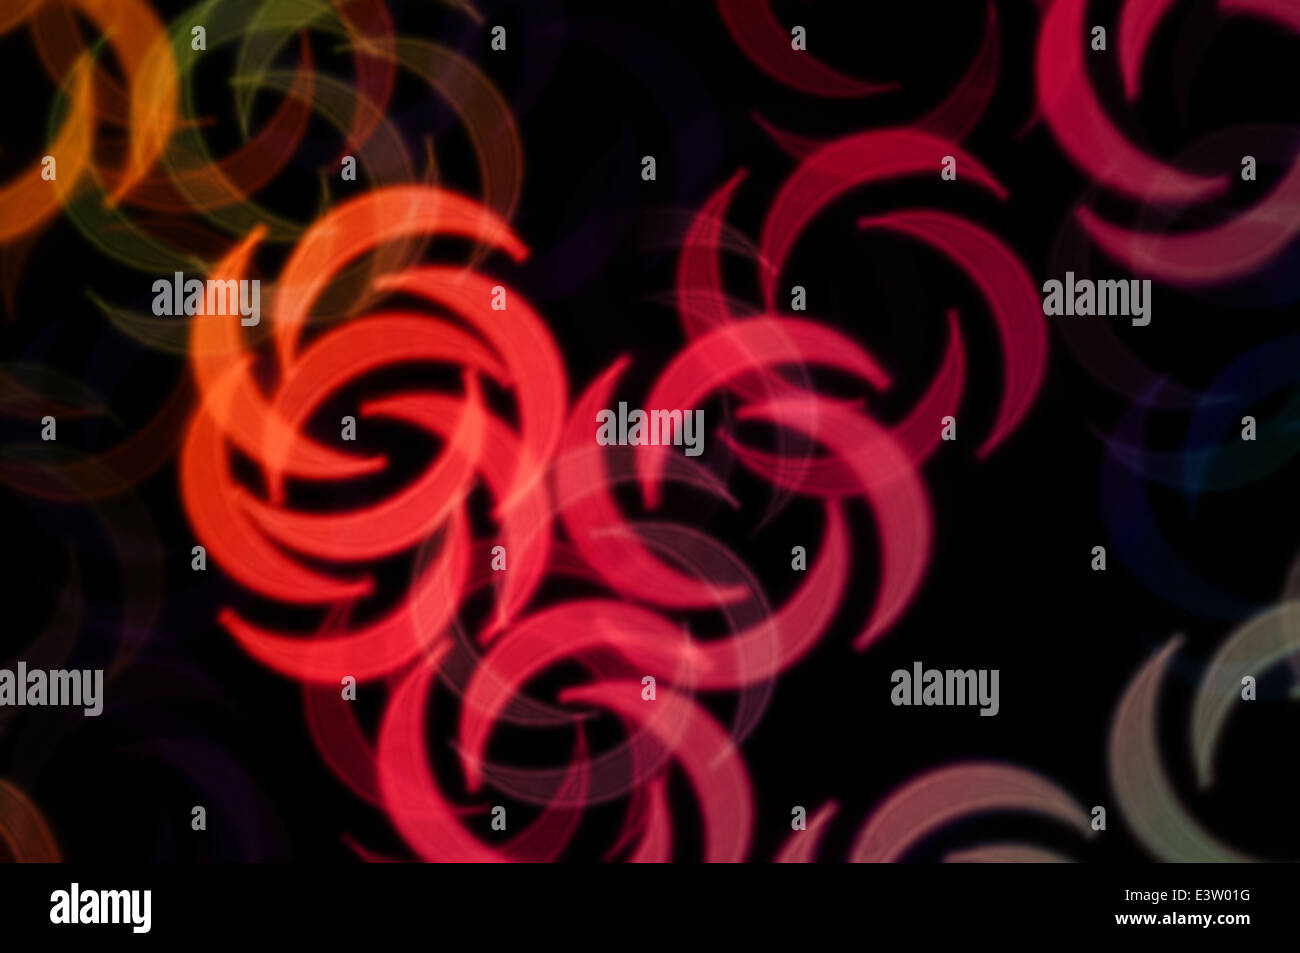 Abstract swirl shapes colorful orbs blur party background. Stock Photo